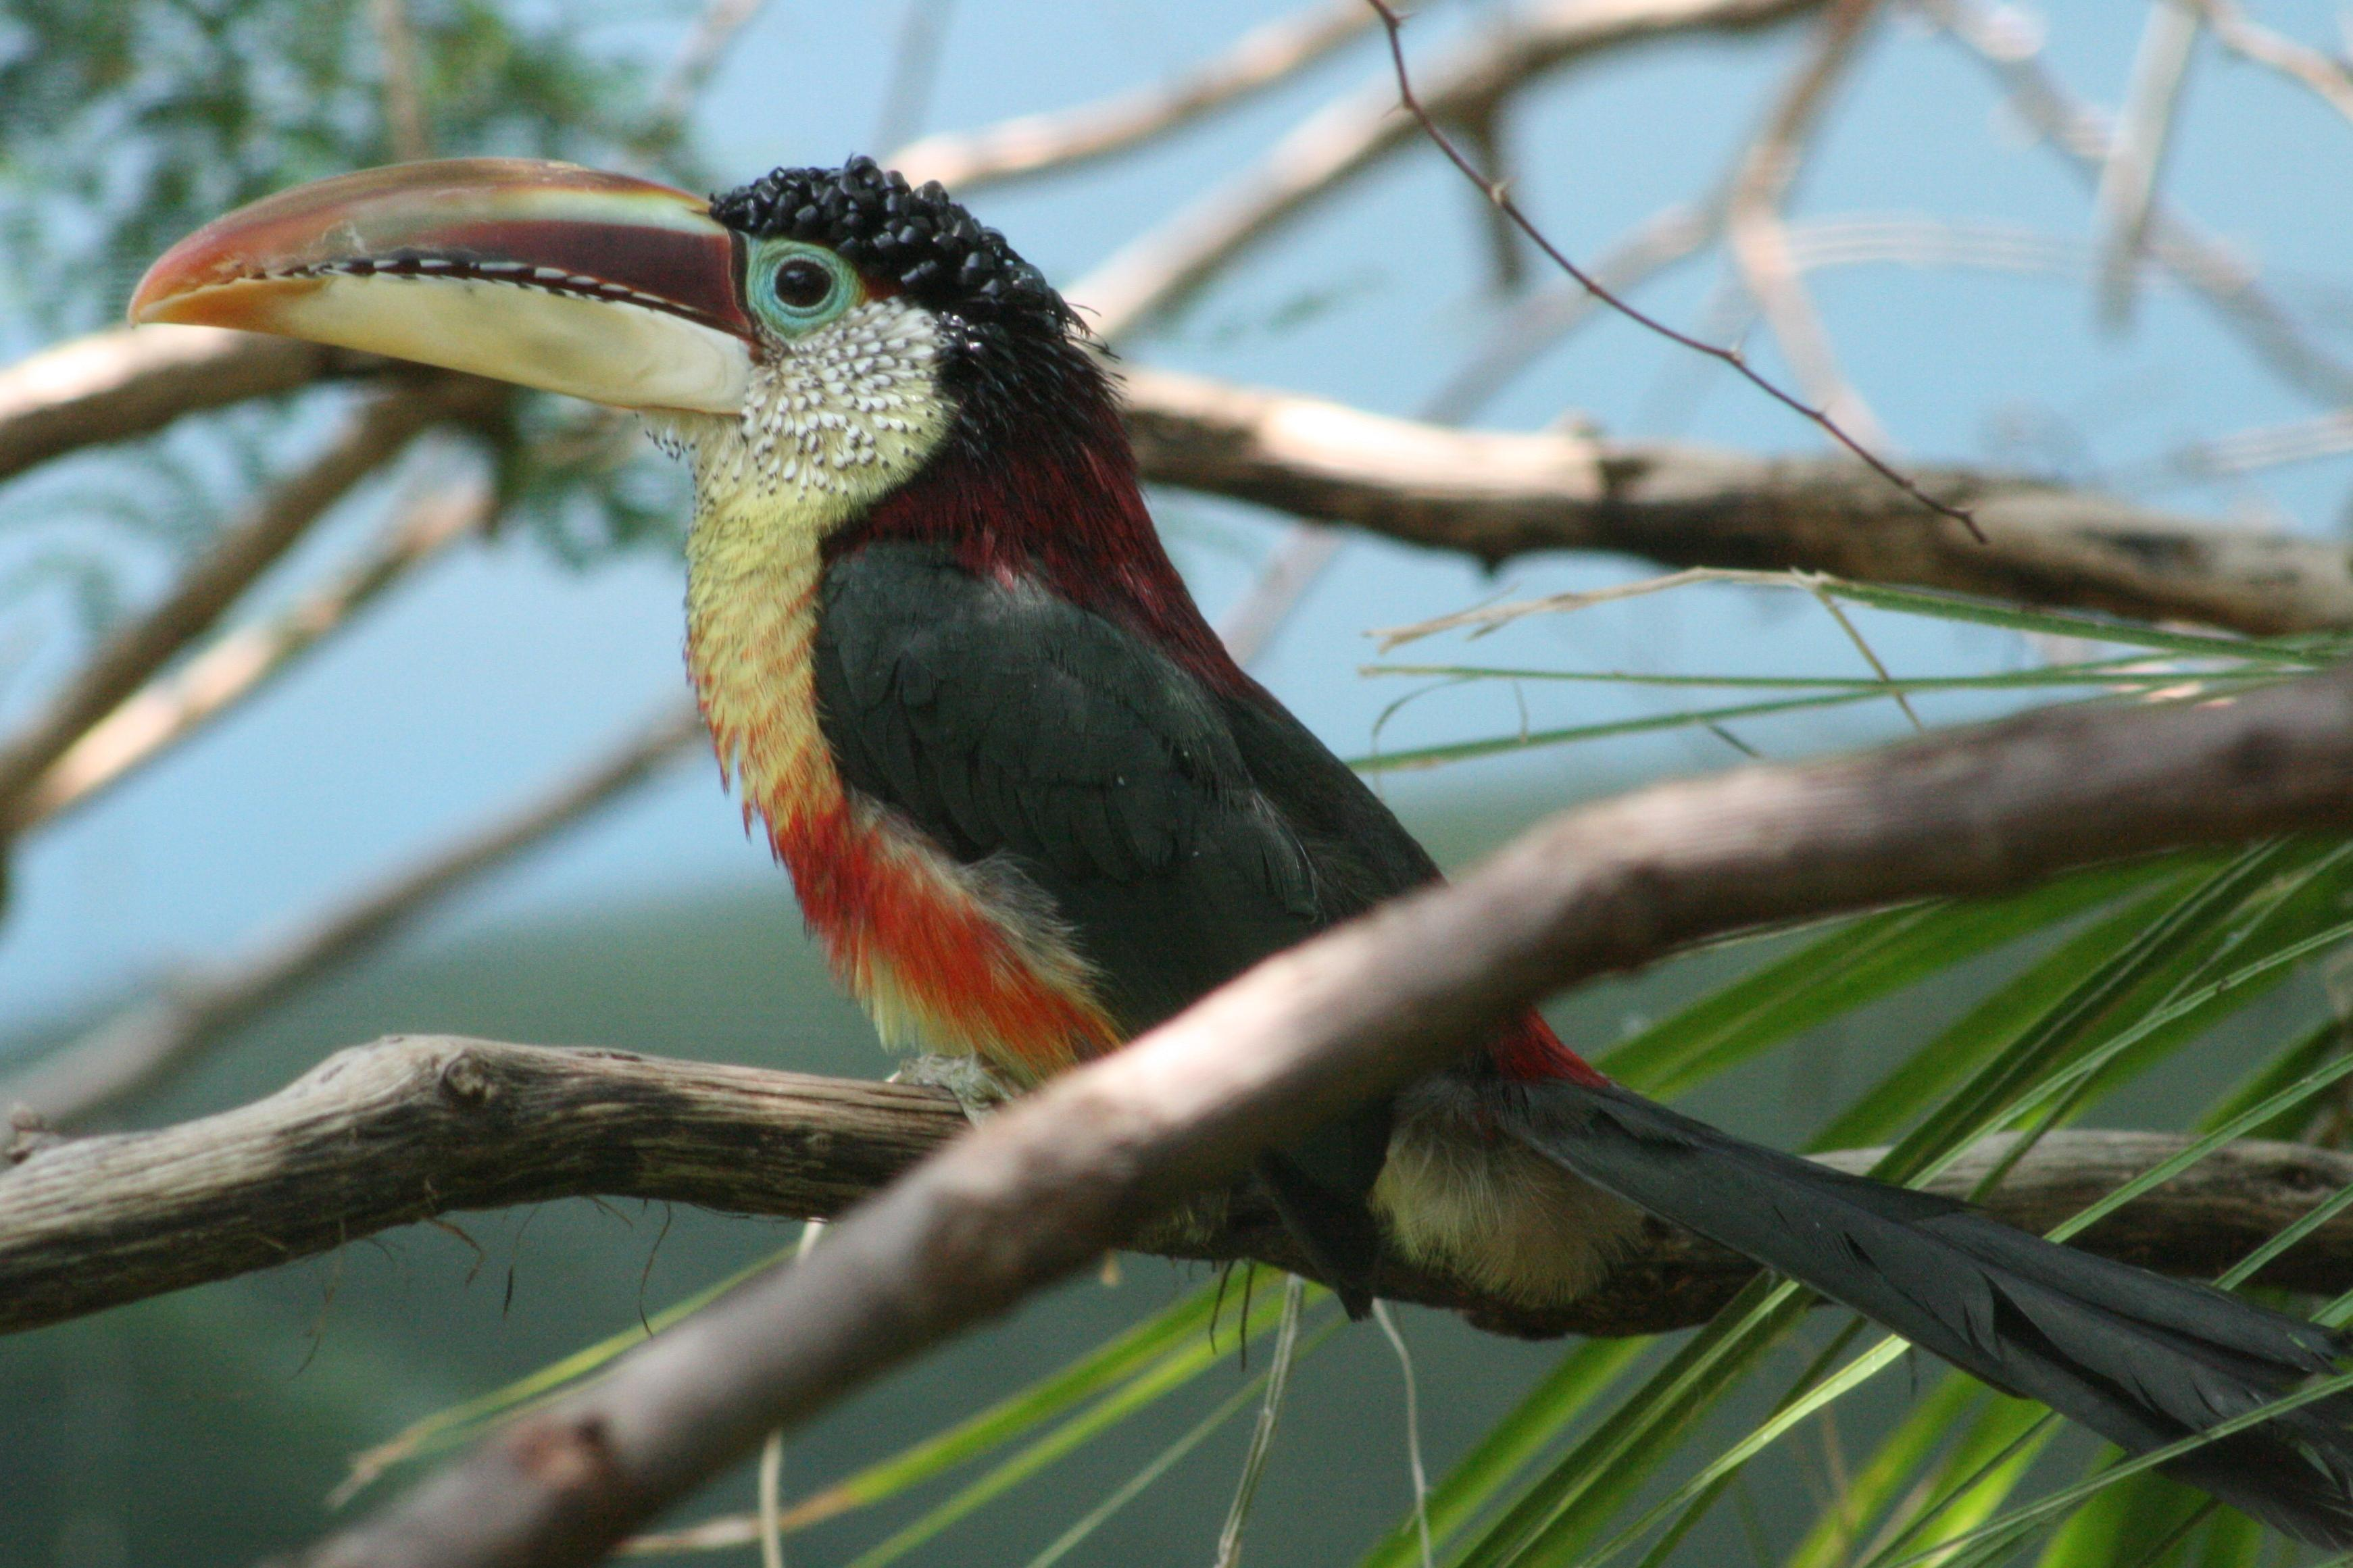 https://upload.wikimedia.org/wikipedia/commons/a/a6/Curl-crested_Aracari.jpg